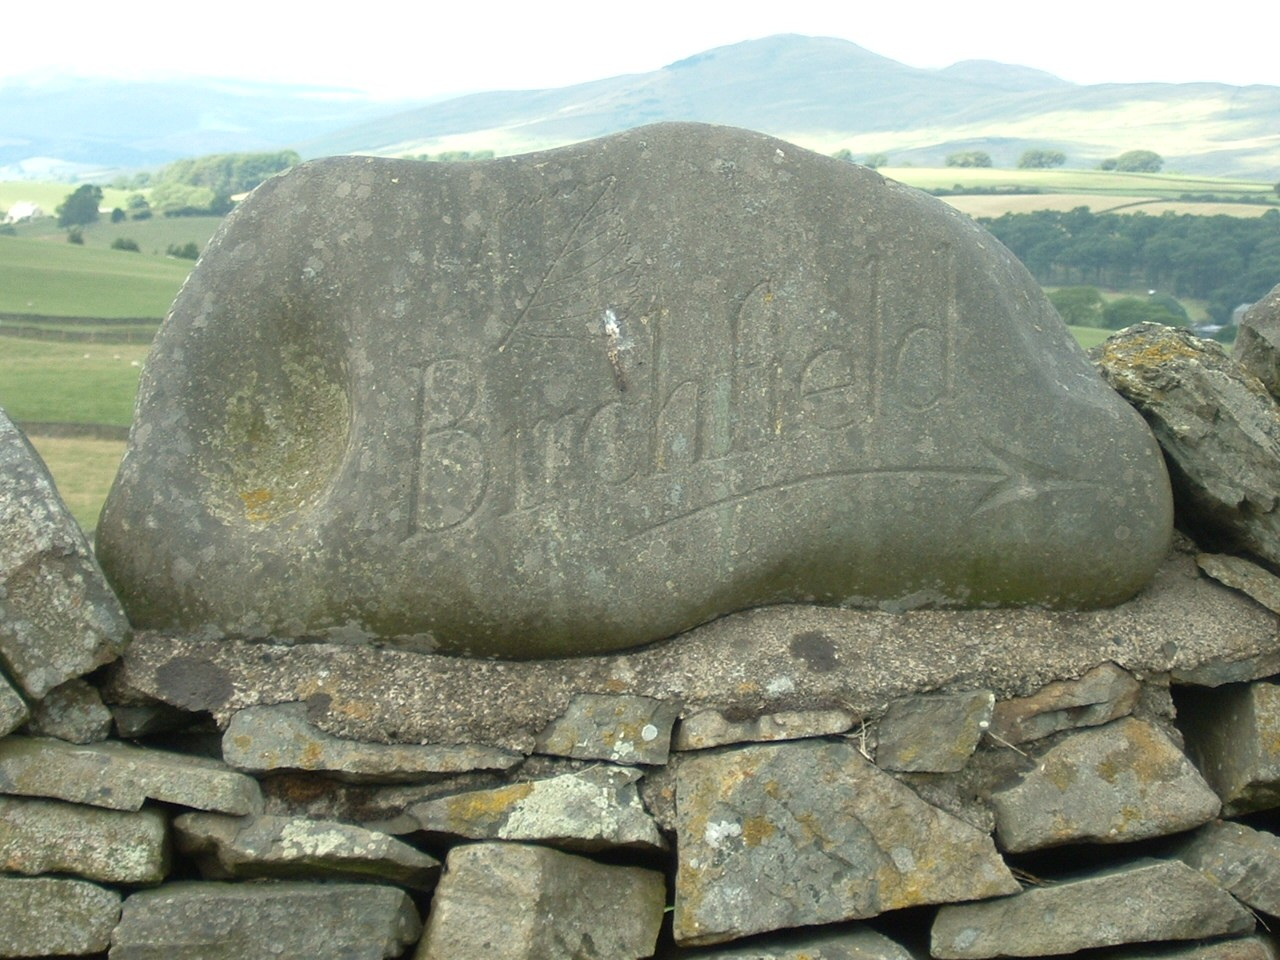 Boulder Stone Name Plate designed to be fit on top of the wall.